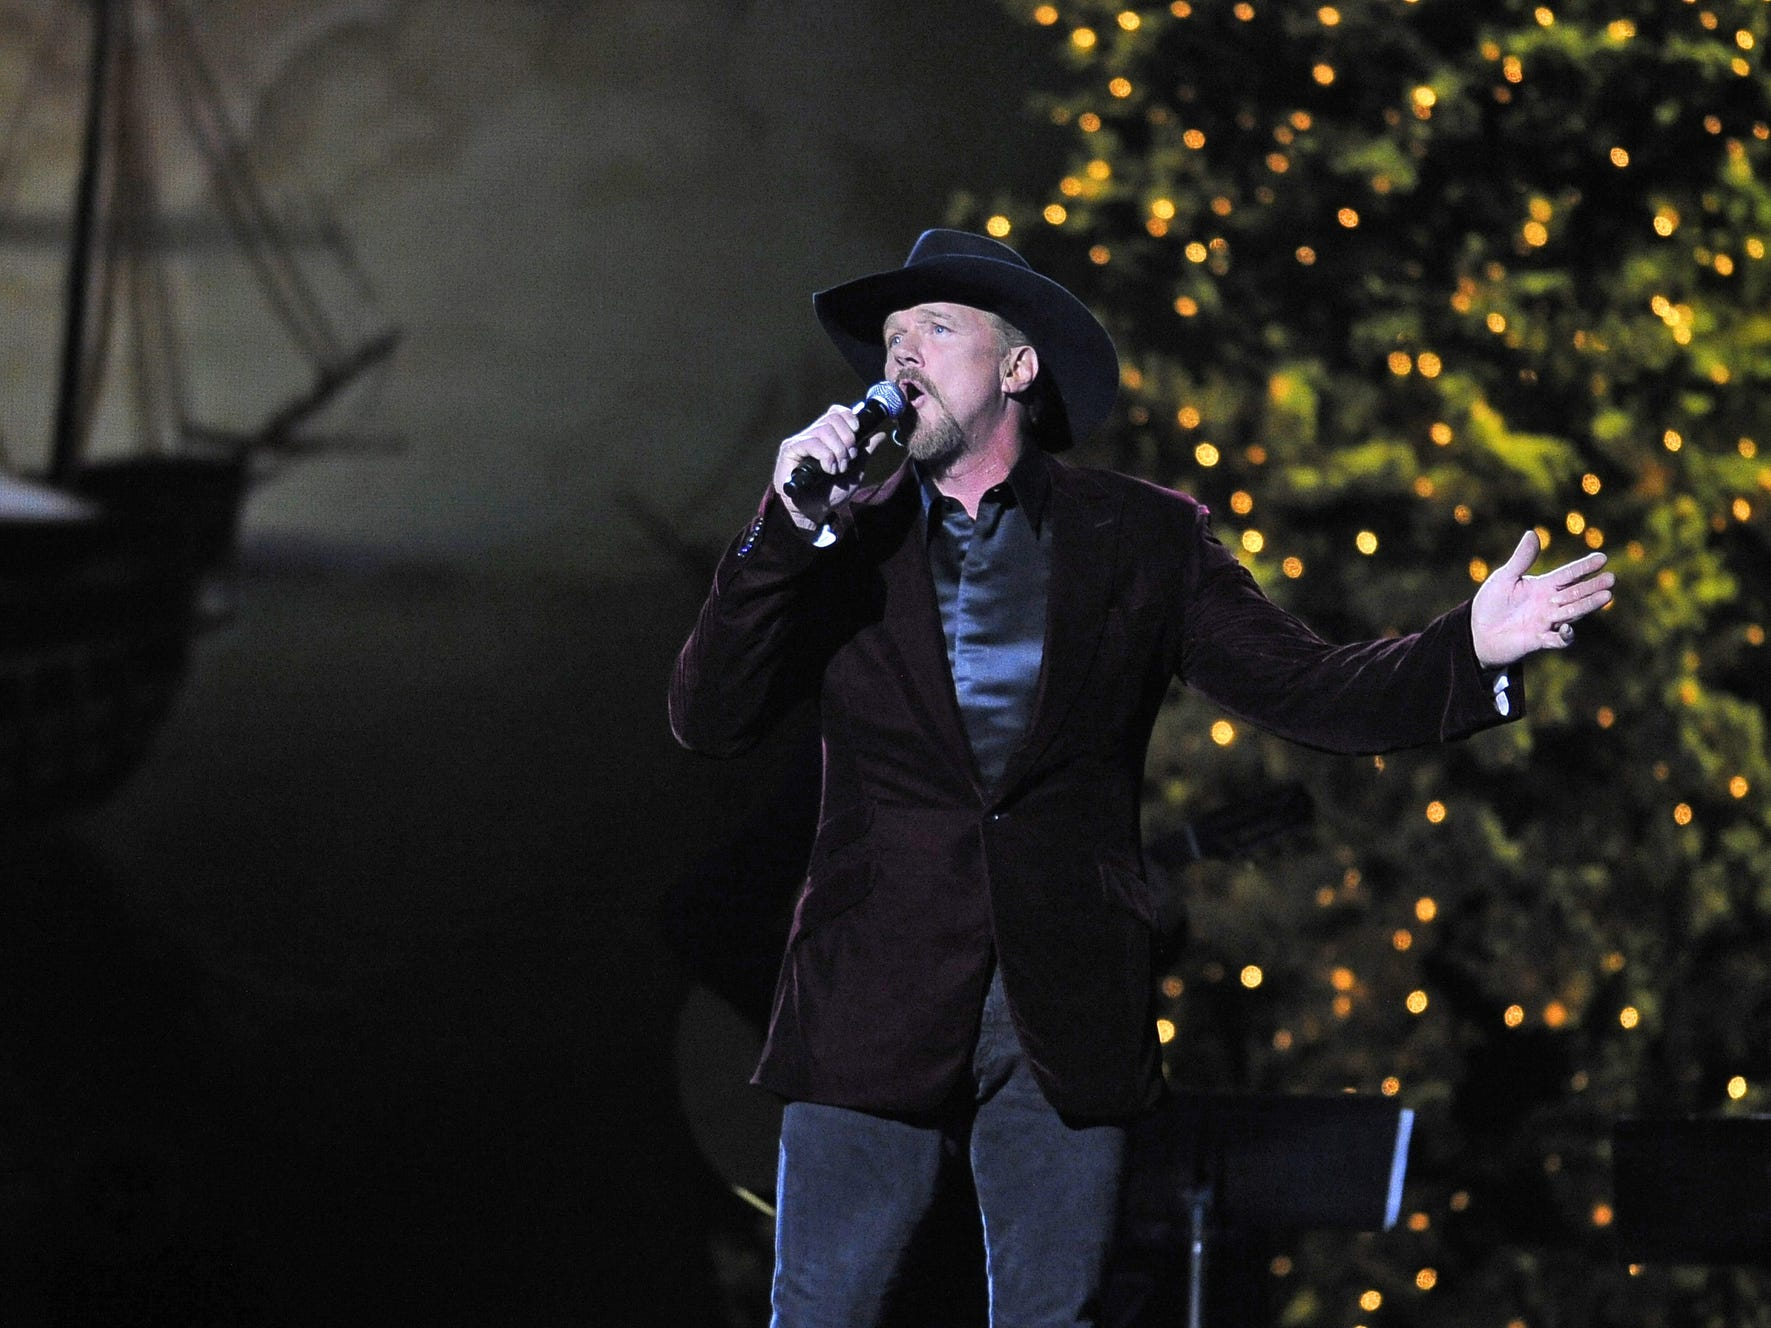 NOV. 16 TRACE ADKINS CHRISTMAS SHOW: Through Dec. 25, Gaylord Opryland Hotel's Tennessee Ballroom, $99.99-$129.99, christmasatgaylordopryland.com